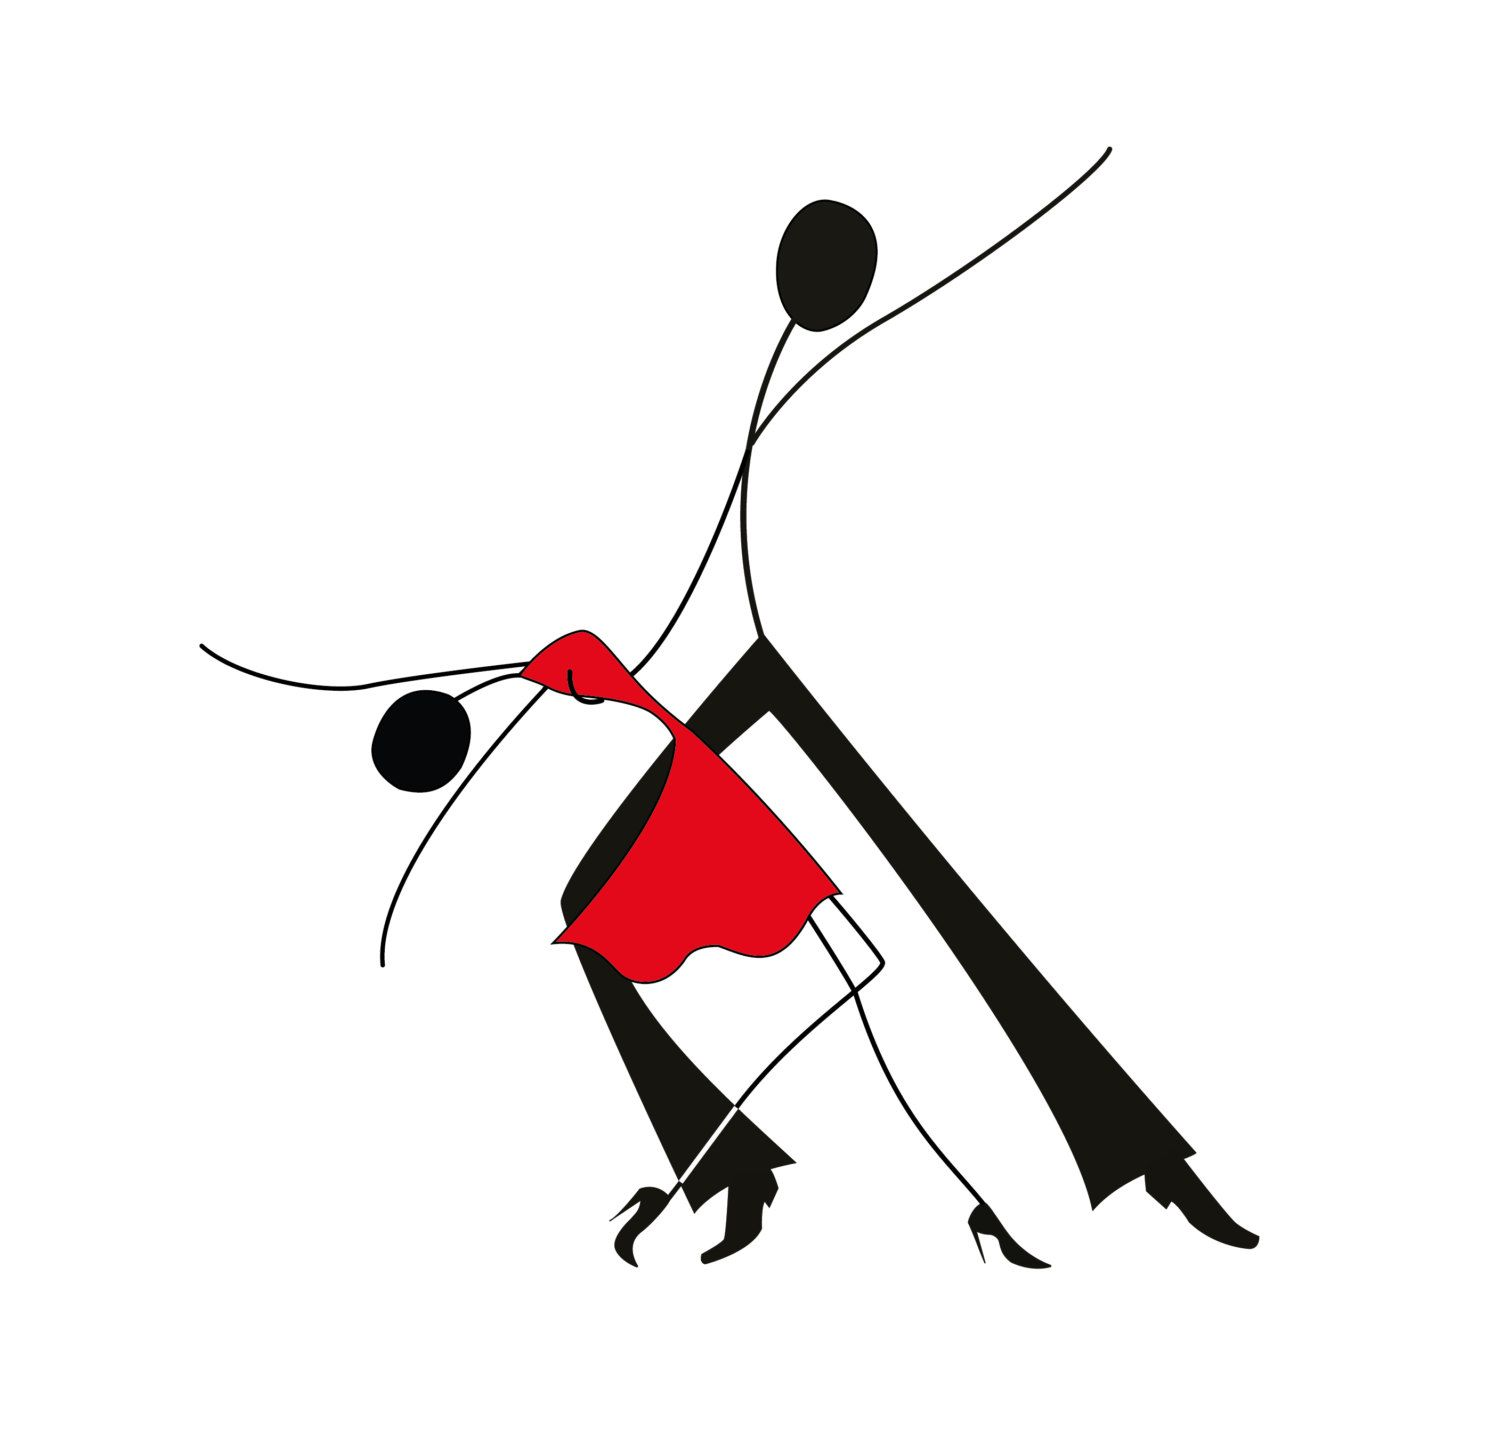 1500x1445 Dancing Man And Woman Stick Figures Czarne Stick